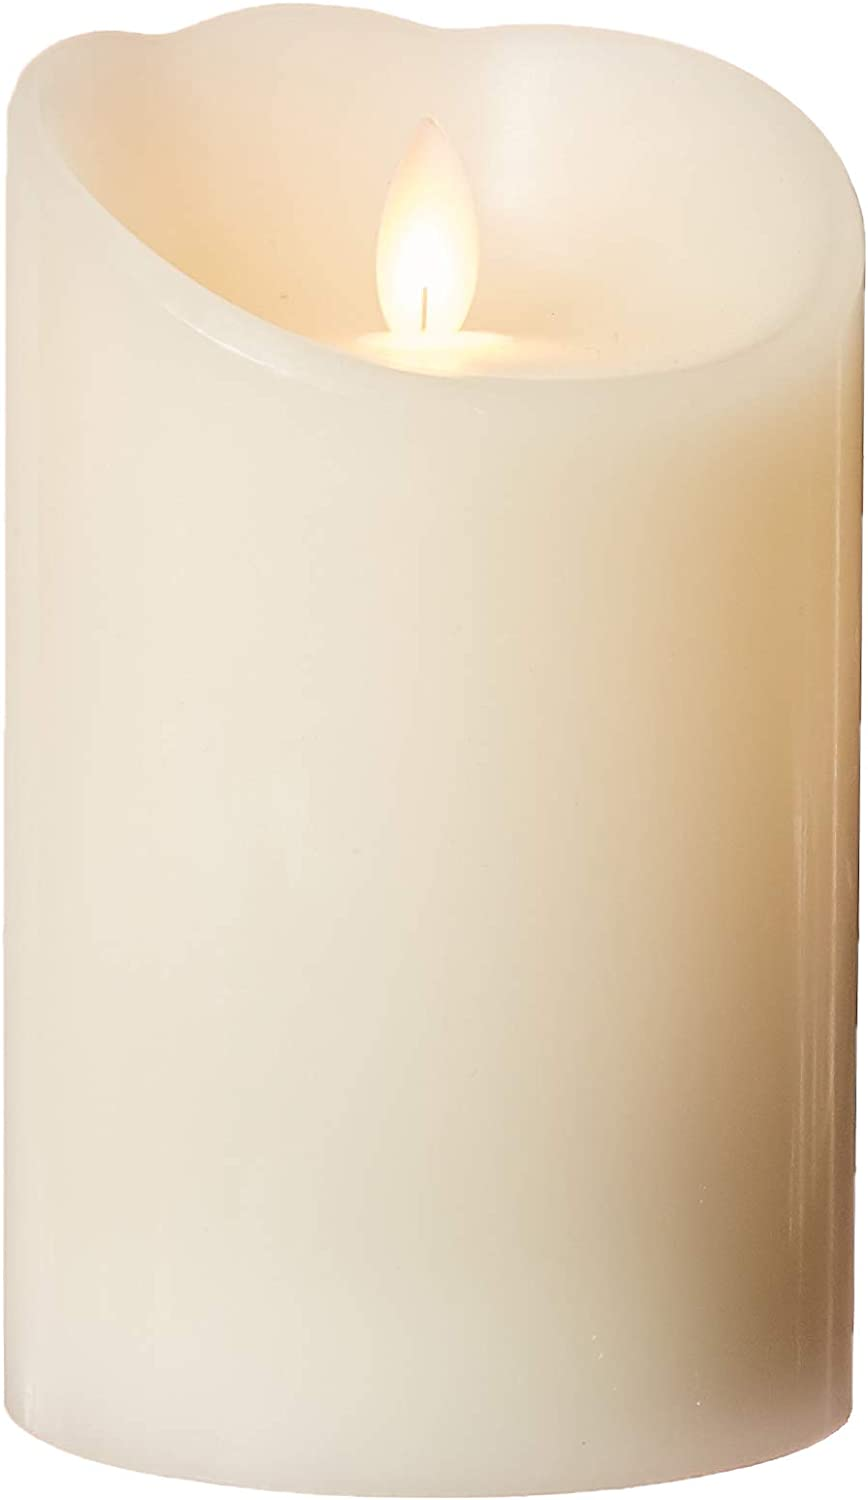 Sterno Home MGT814406CR00 Cream Smooth Wax Pillar with Timer